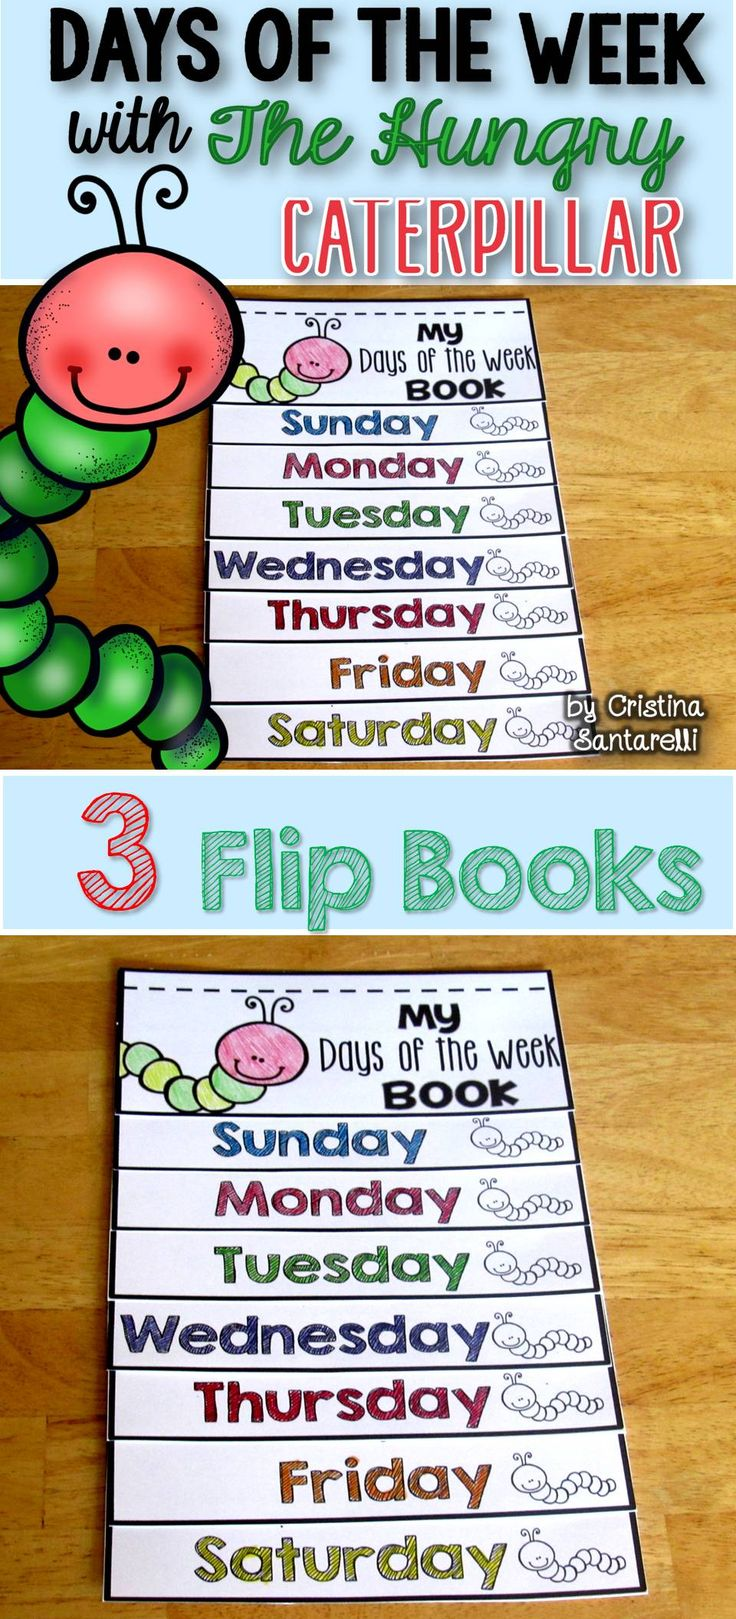 2017 05 the very hungry caterpillar lesson plans - Days Of The Week With The Hungry Caterpillar Activity